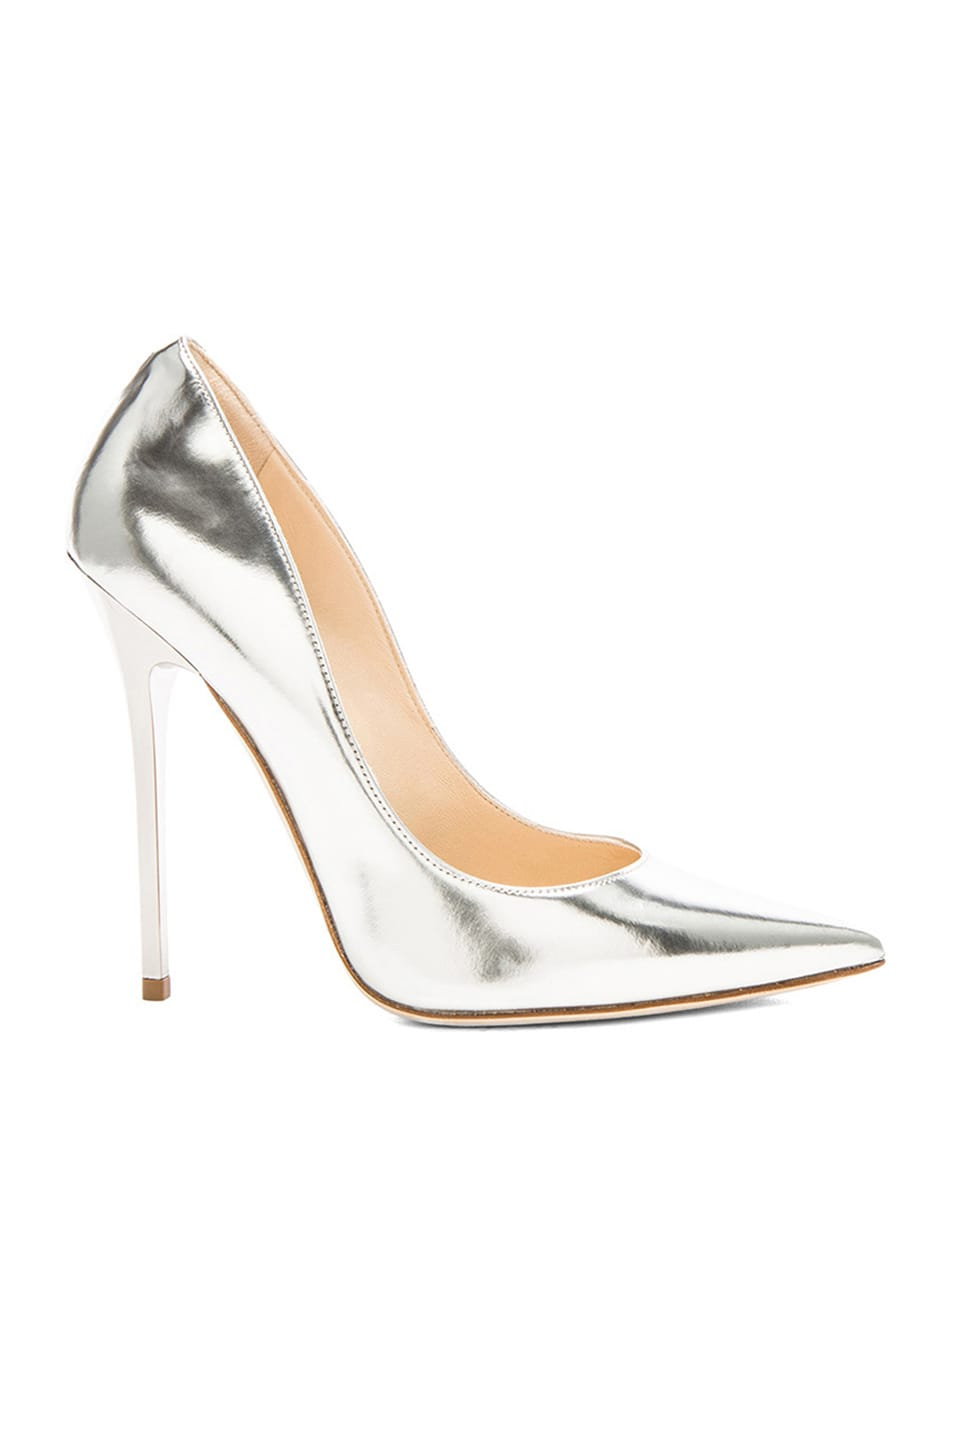 c4d68d6b4 Buy Original Jimmy Choo Anouk Leather Pumps at Indonesia